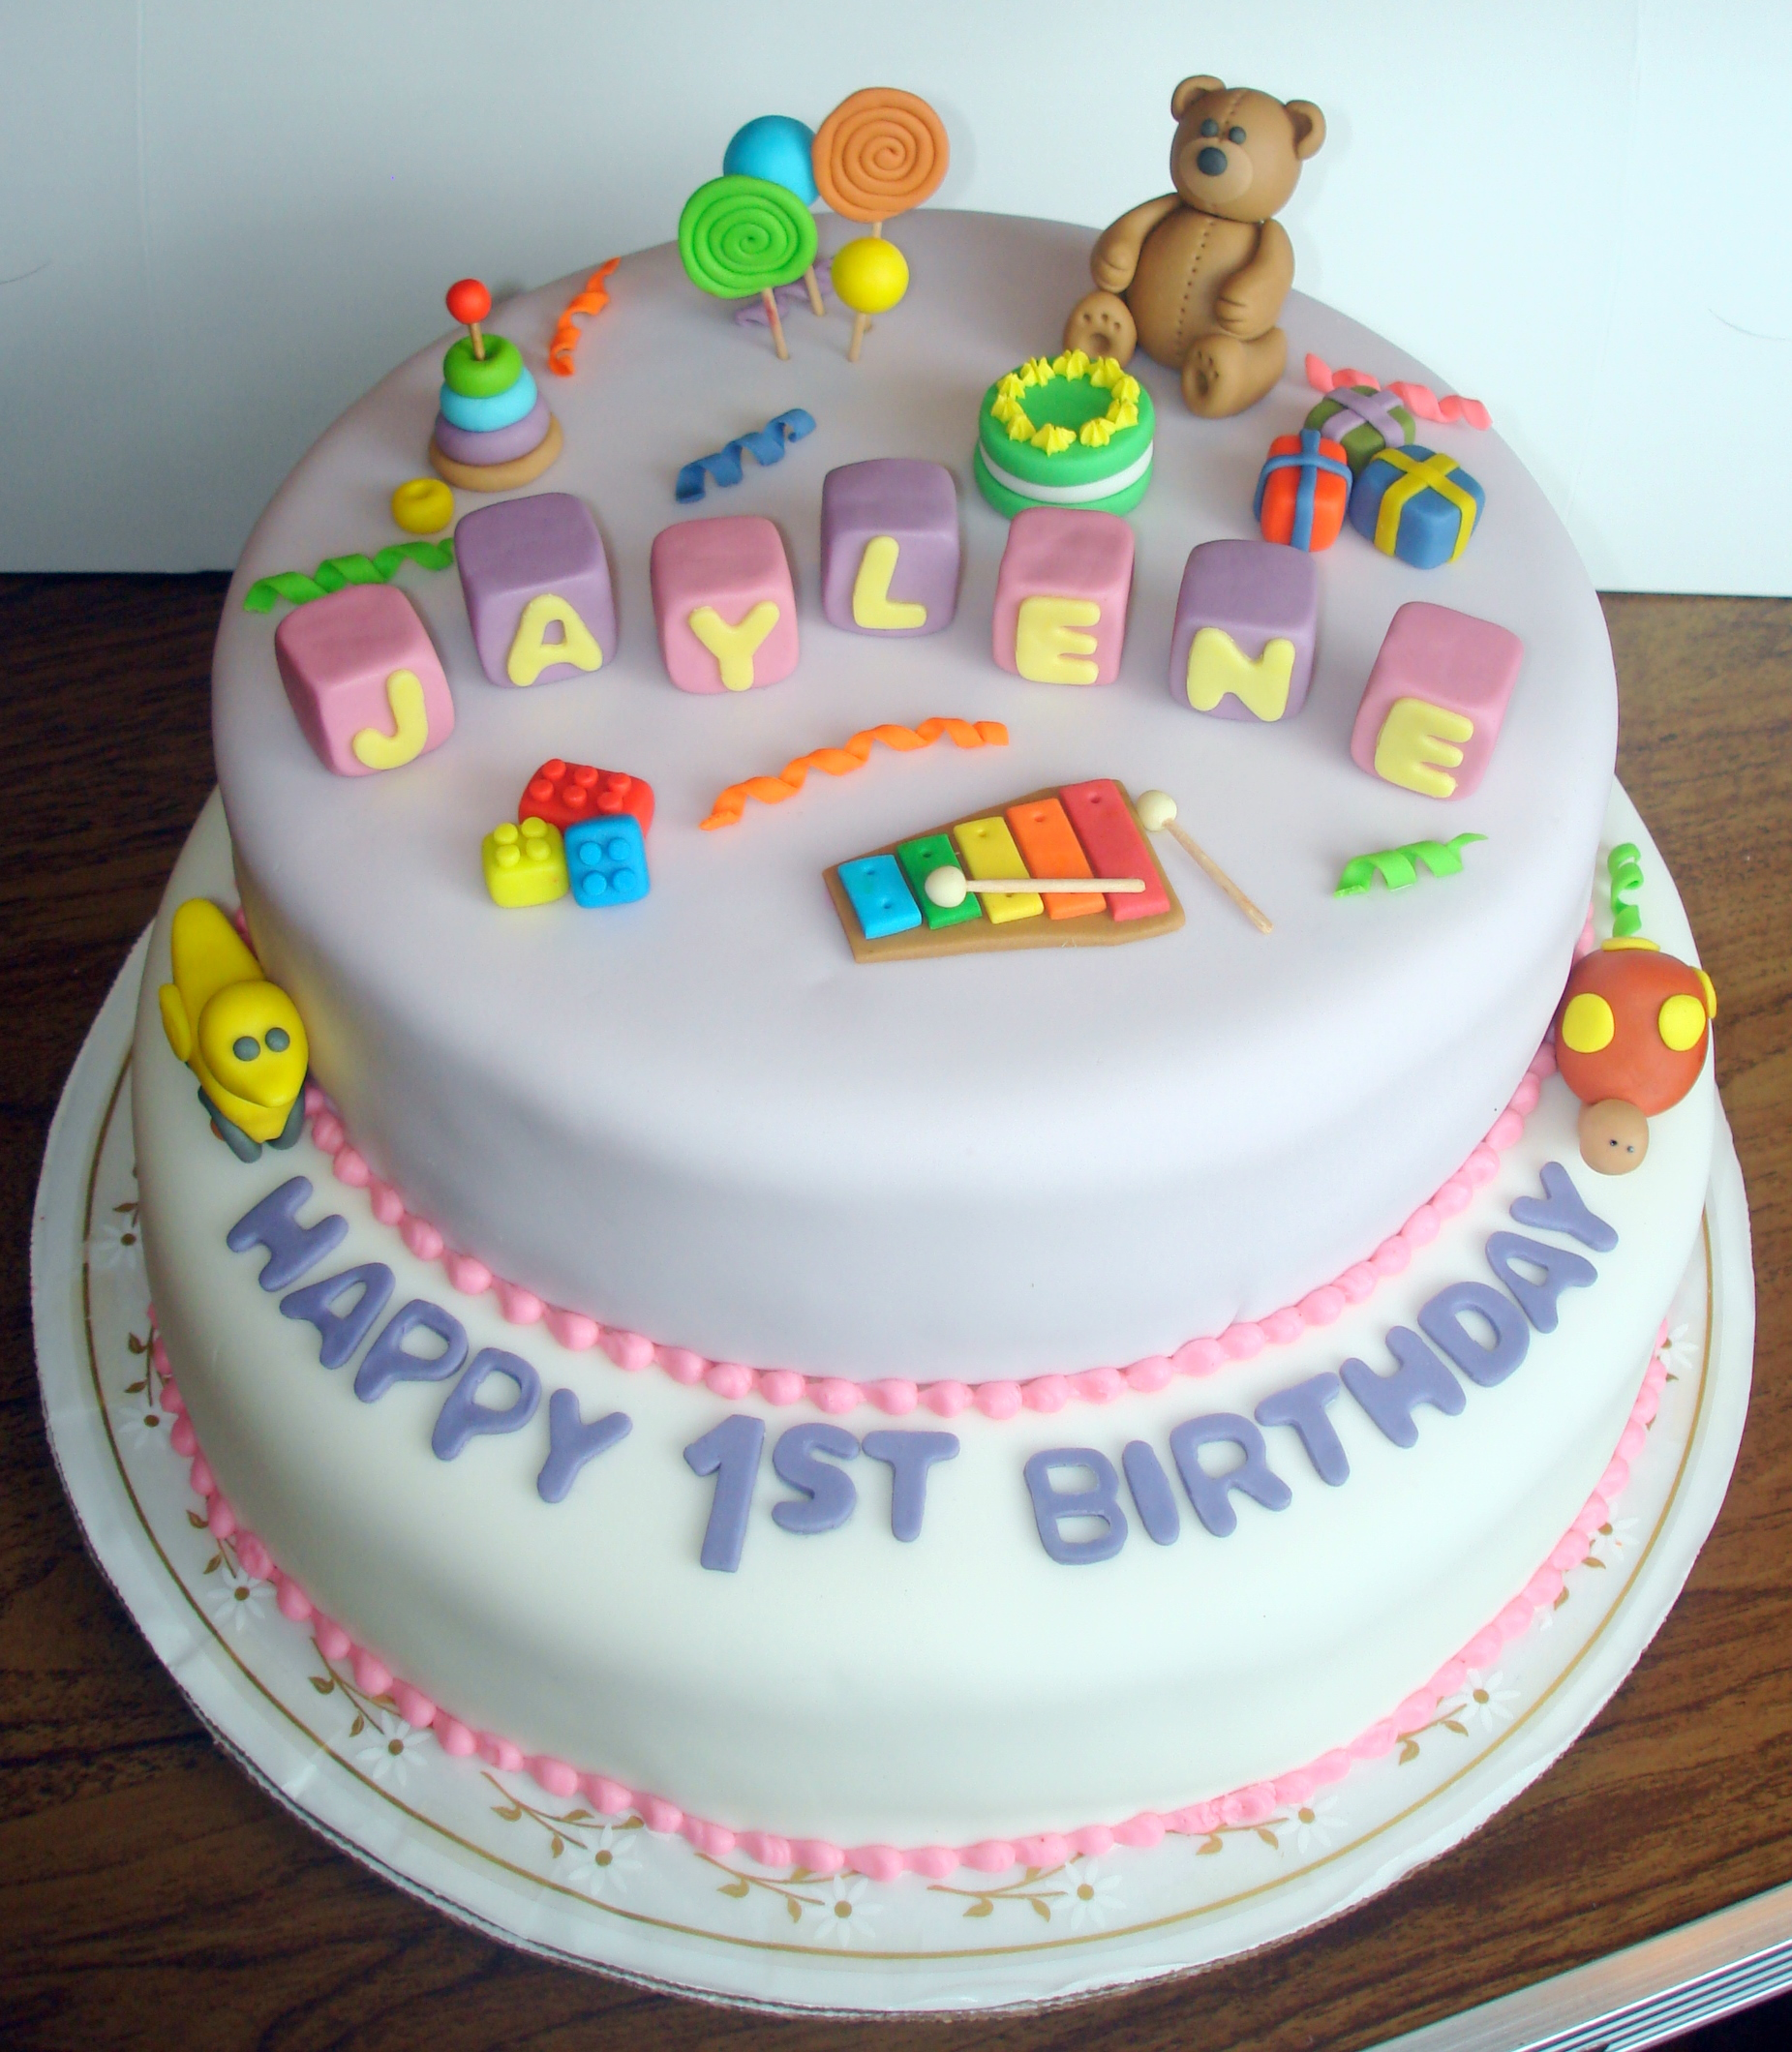 Birthday Cake Ideas For Baby S First Birthday : Baby s First Birthday Cake   ms.Tapioca